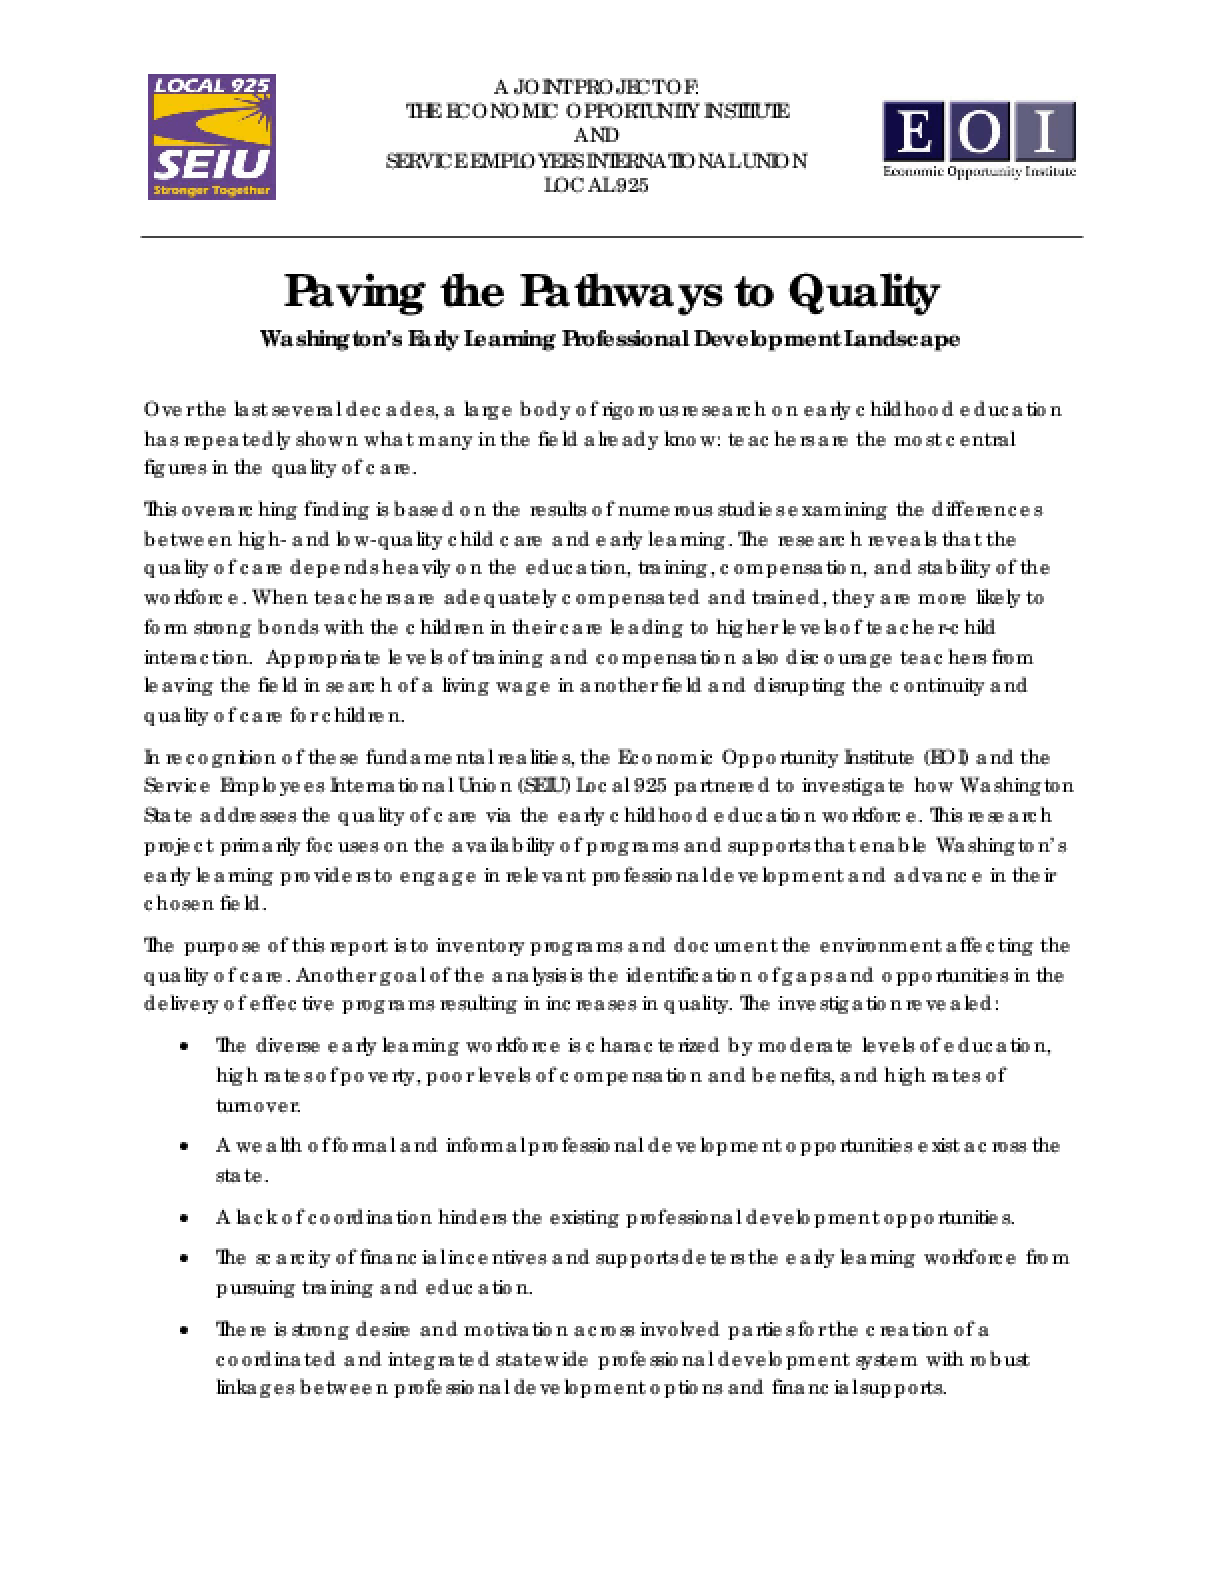 Paving The Pathways To Quality Washington S Early Learning